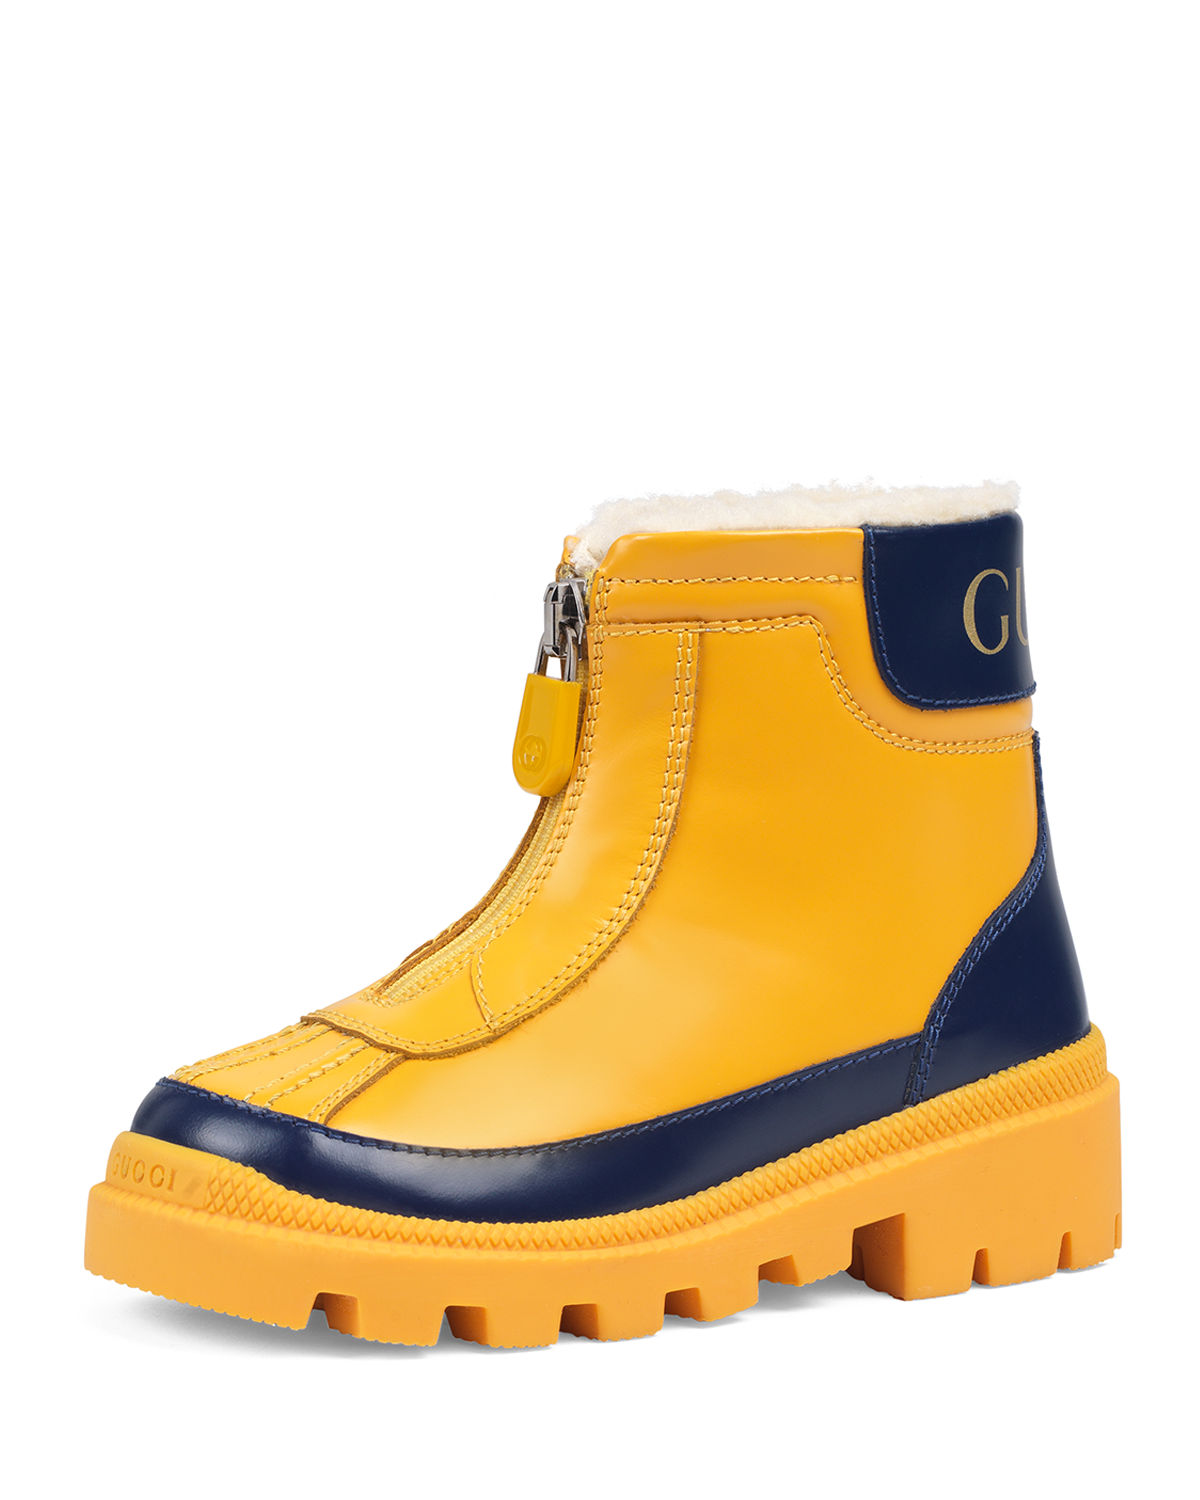 Gucci Leather Zip Front Boots, Toddler/kids In Yellow